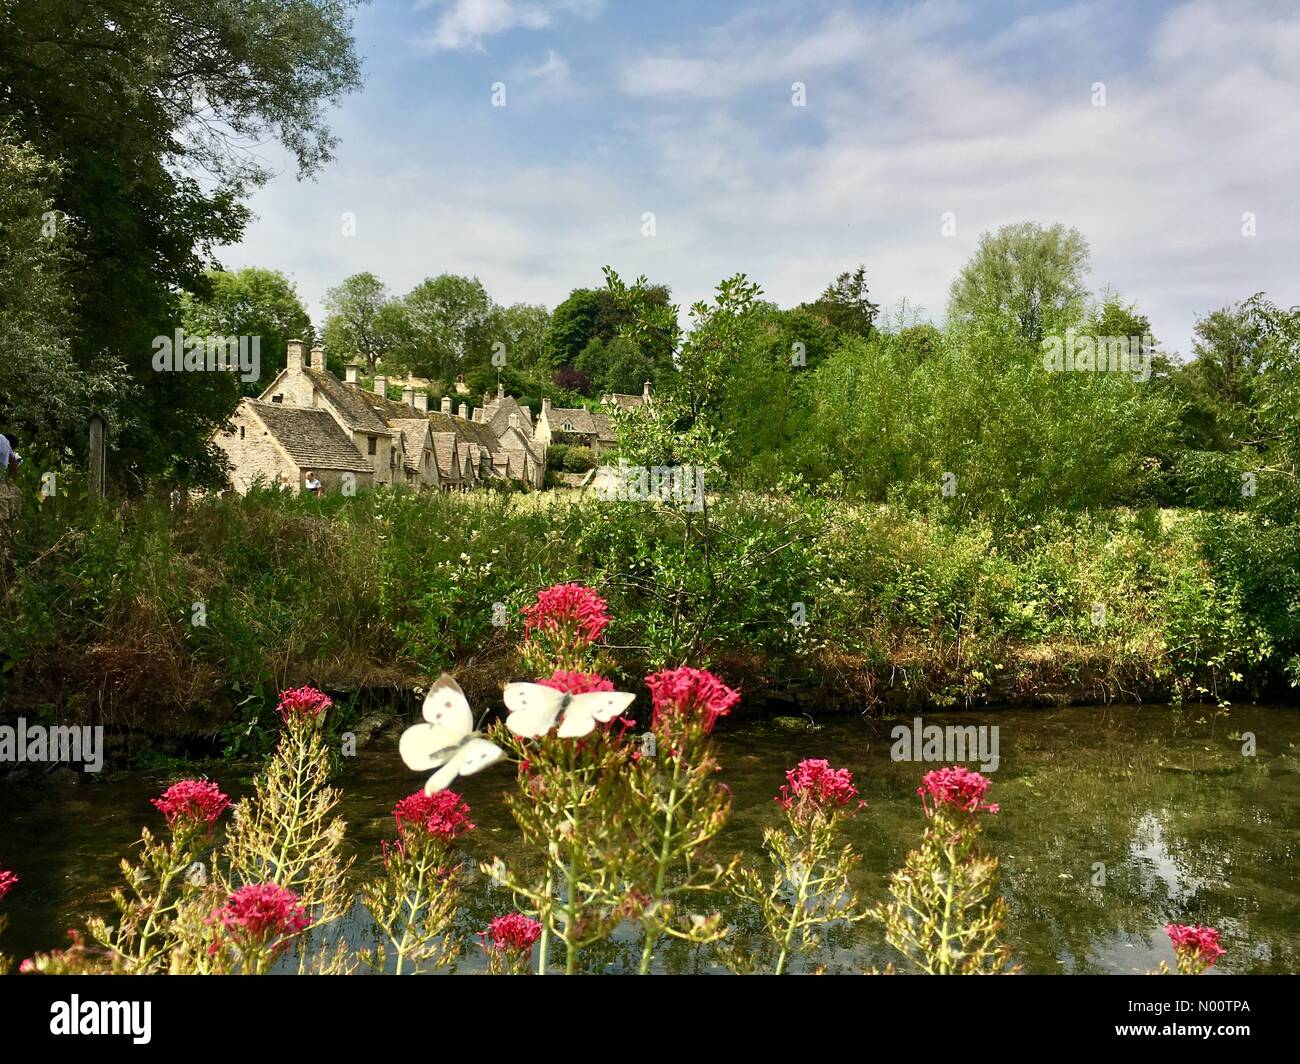 uk-weather-warm-day-in-the-cotswolds-20-